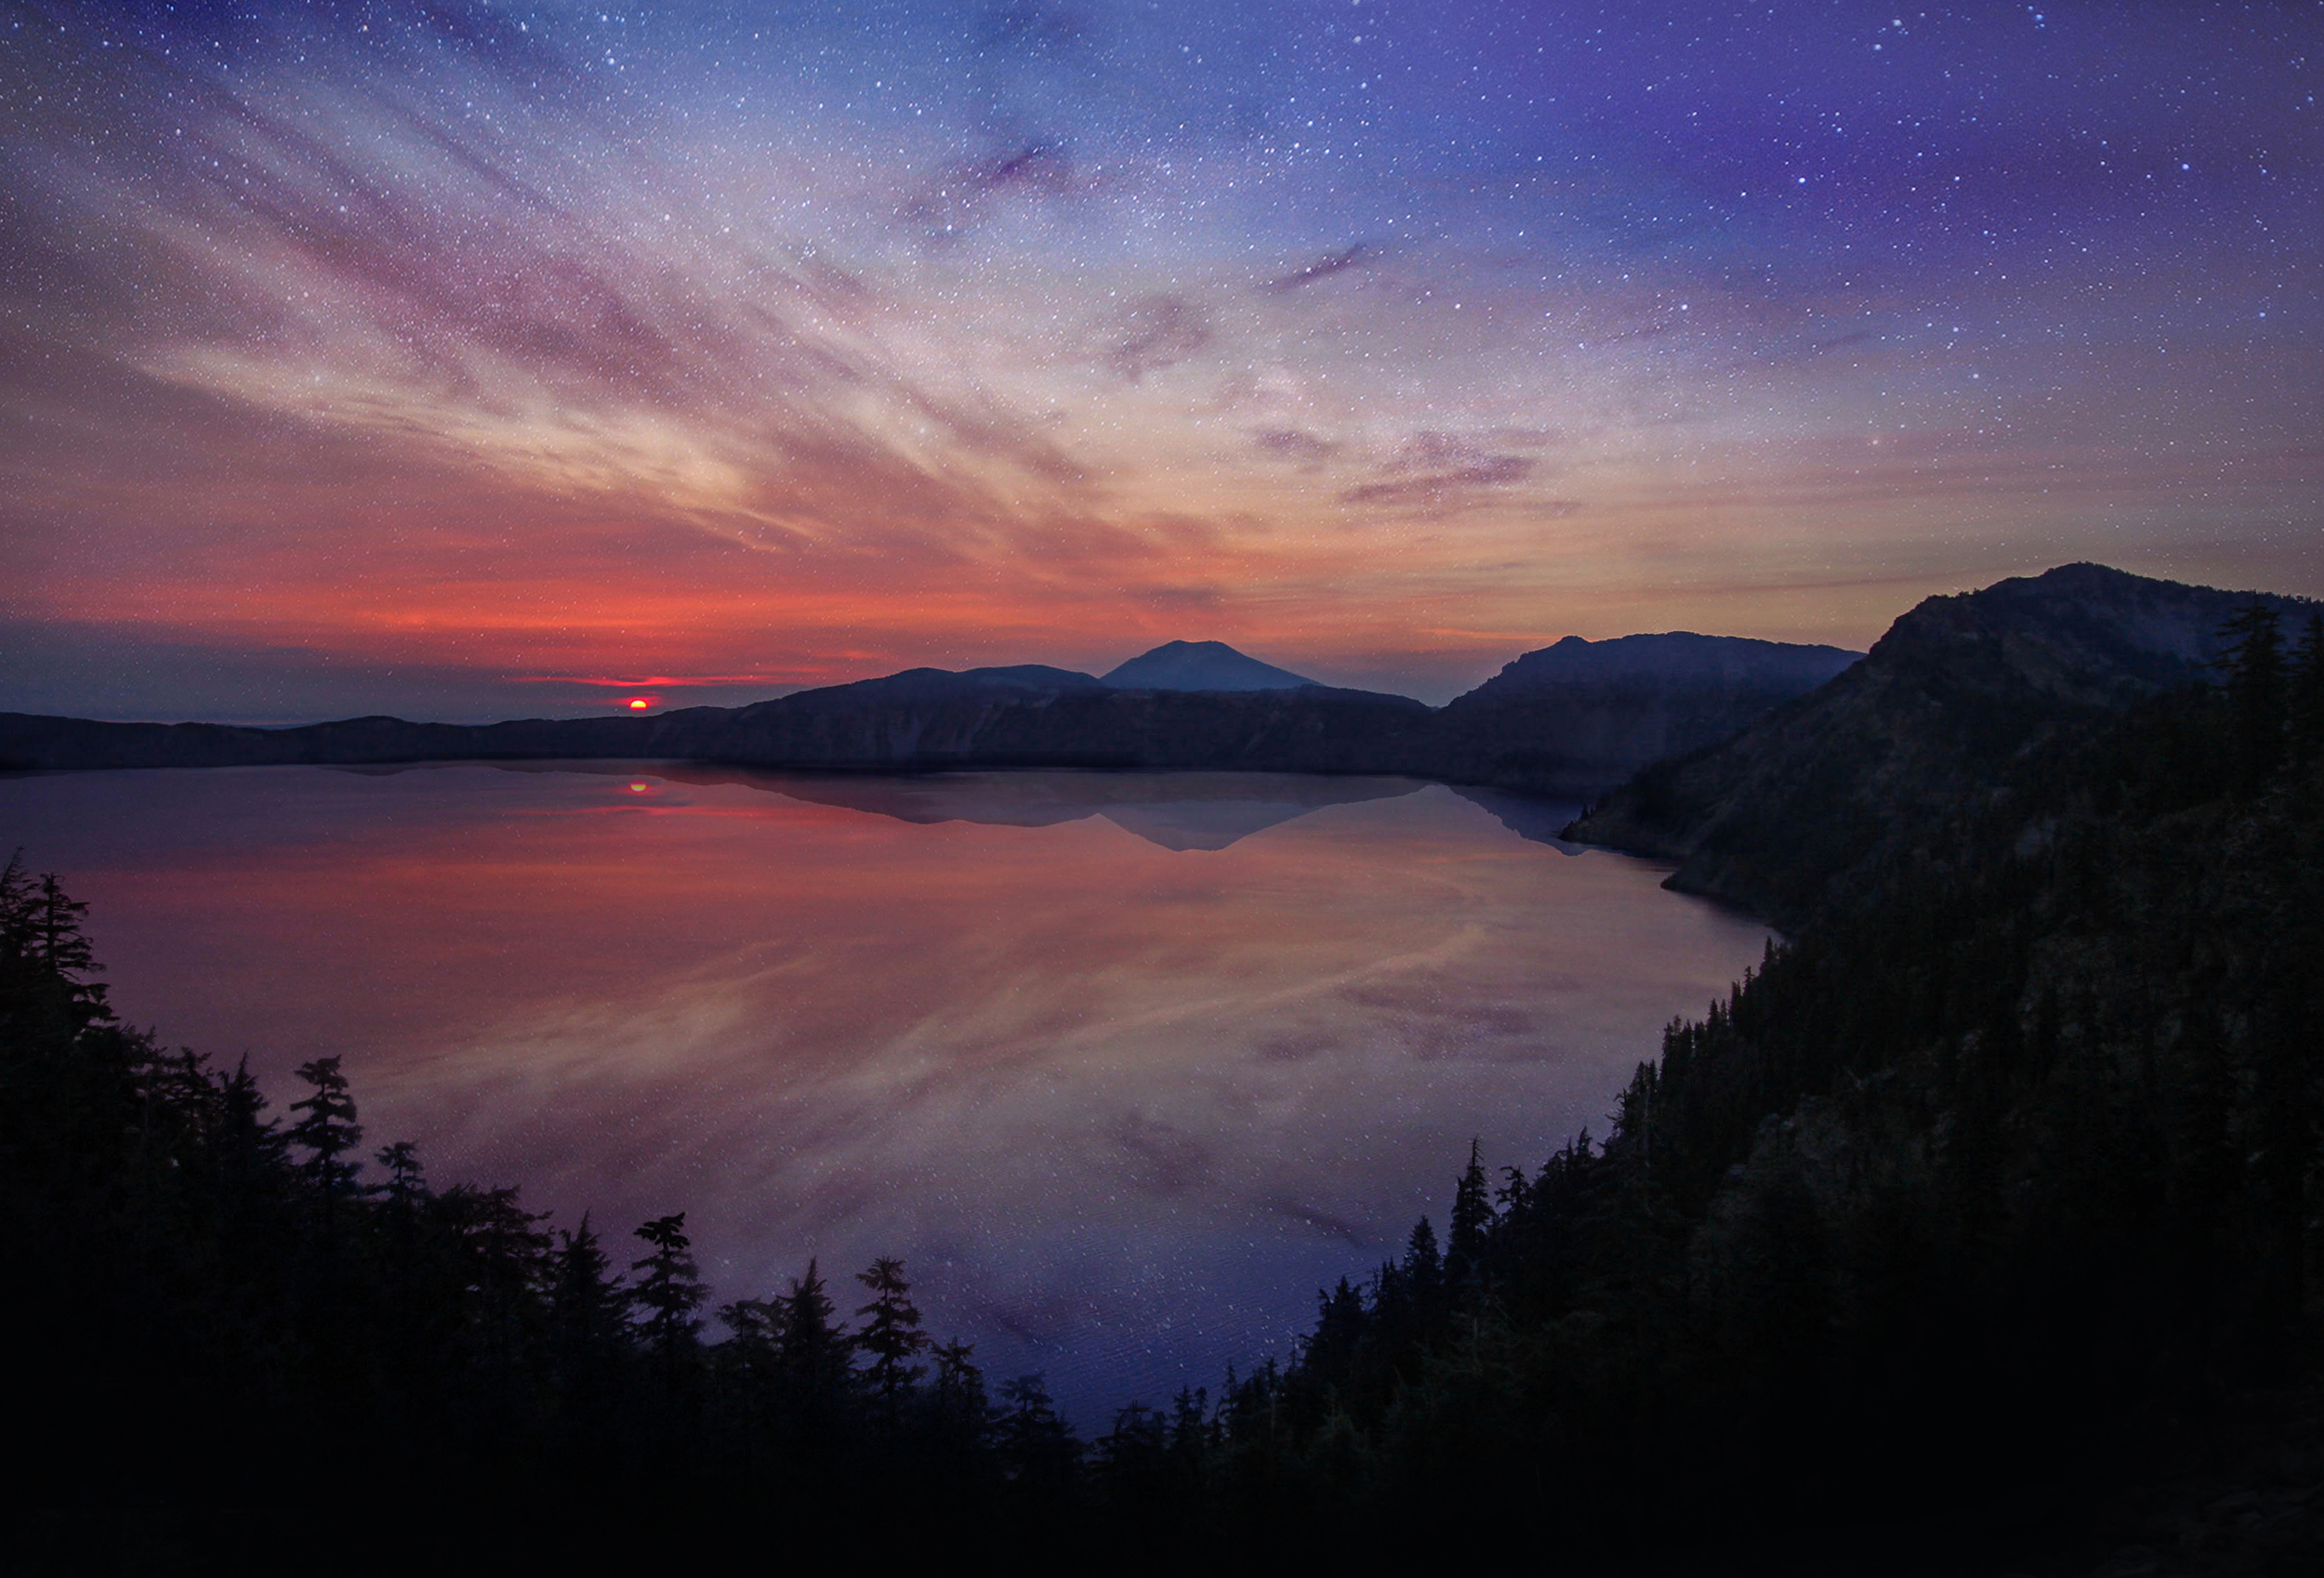 I'll never forget the morning I woke up at 4am to catch the sunrise over Crater Lake.